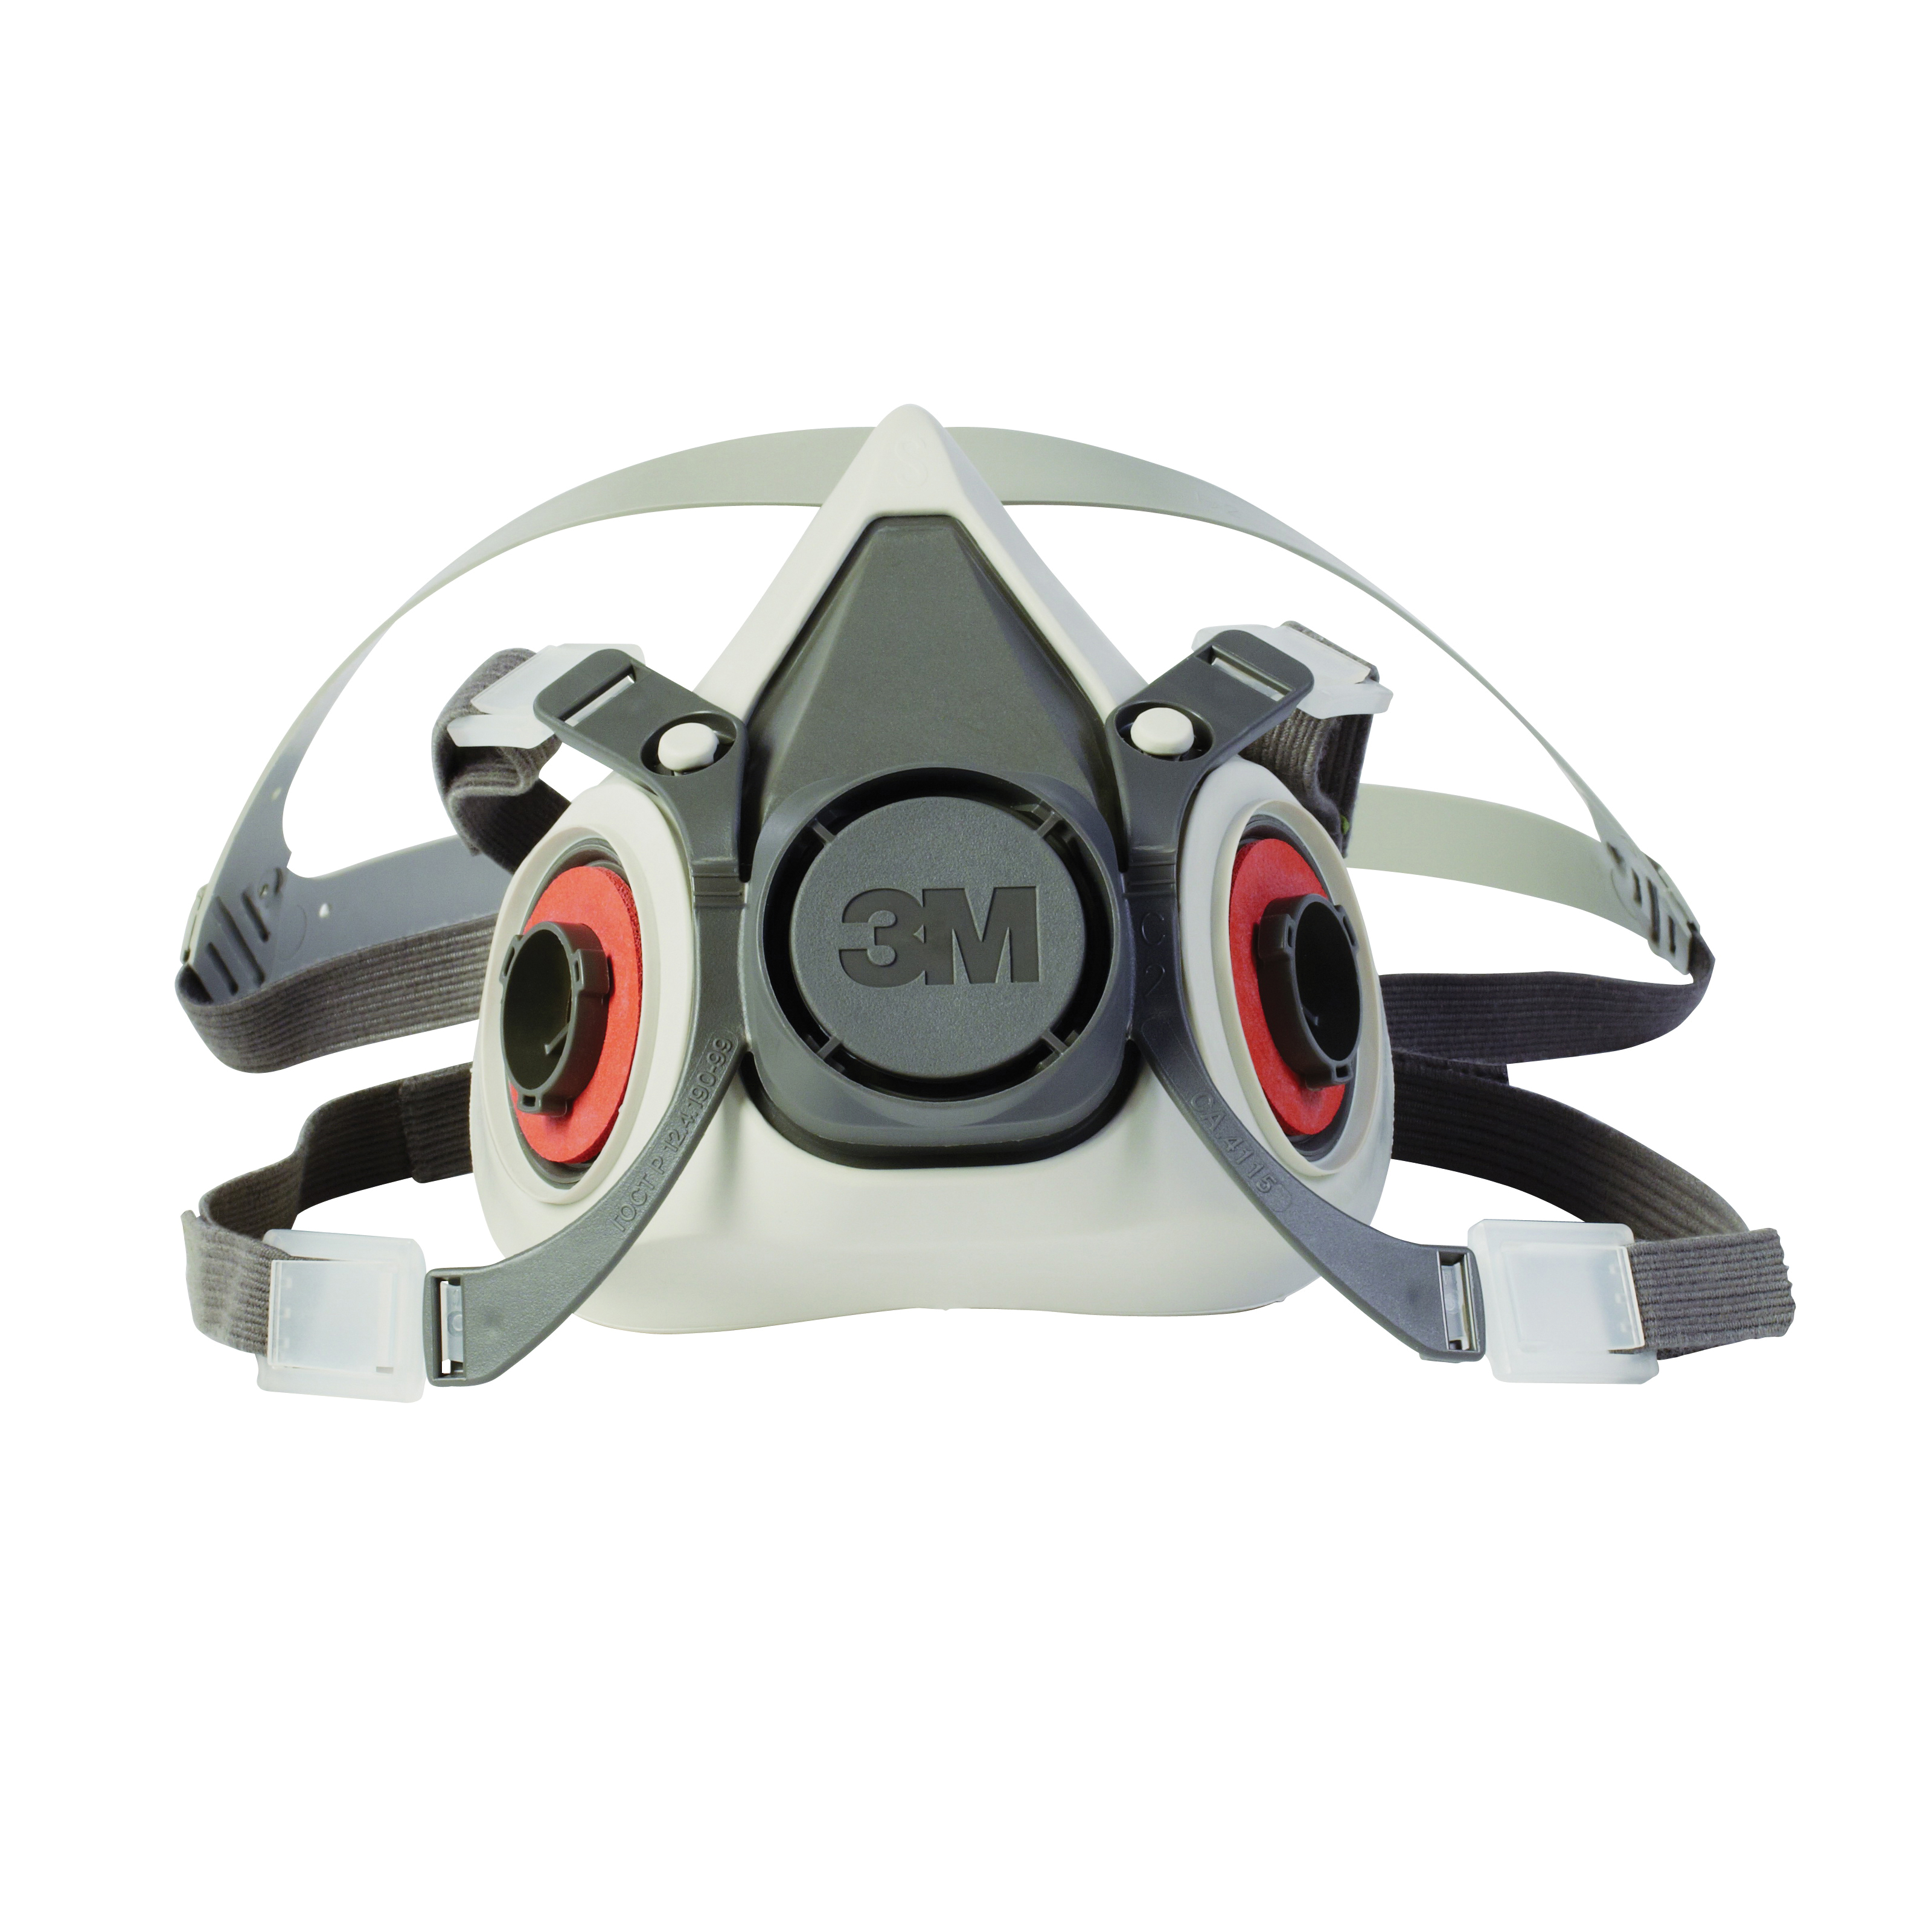 3M™ 051131-07024 Dual Cartridge Reusable Half Facepiece Respirator, S, 4-Point Yolk and Cradle Suspension, Bayonet Connection, Resists: Particulates, Gases and Vapors